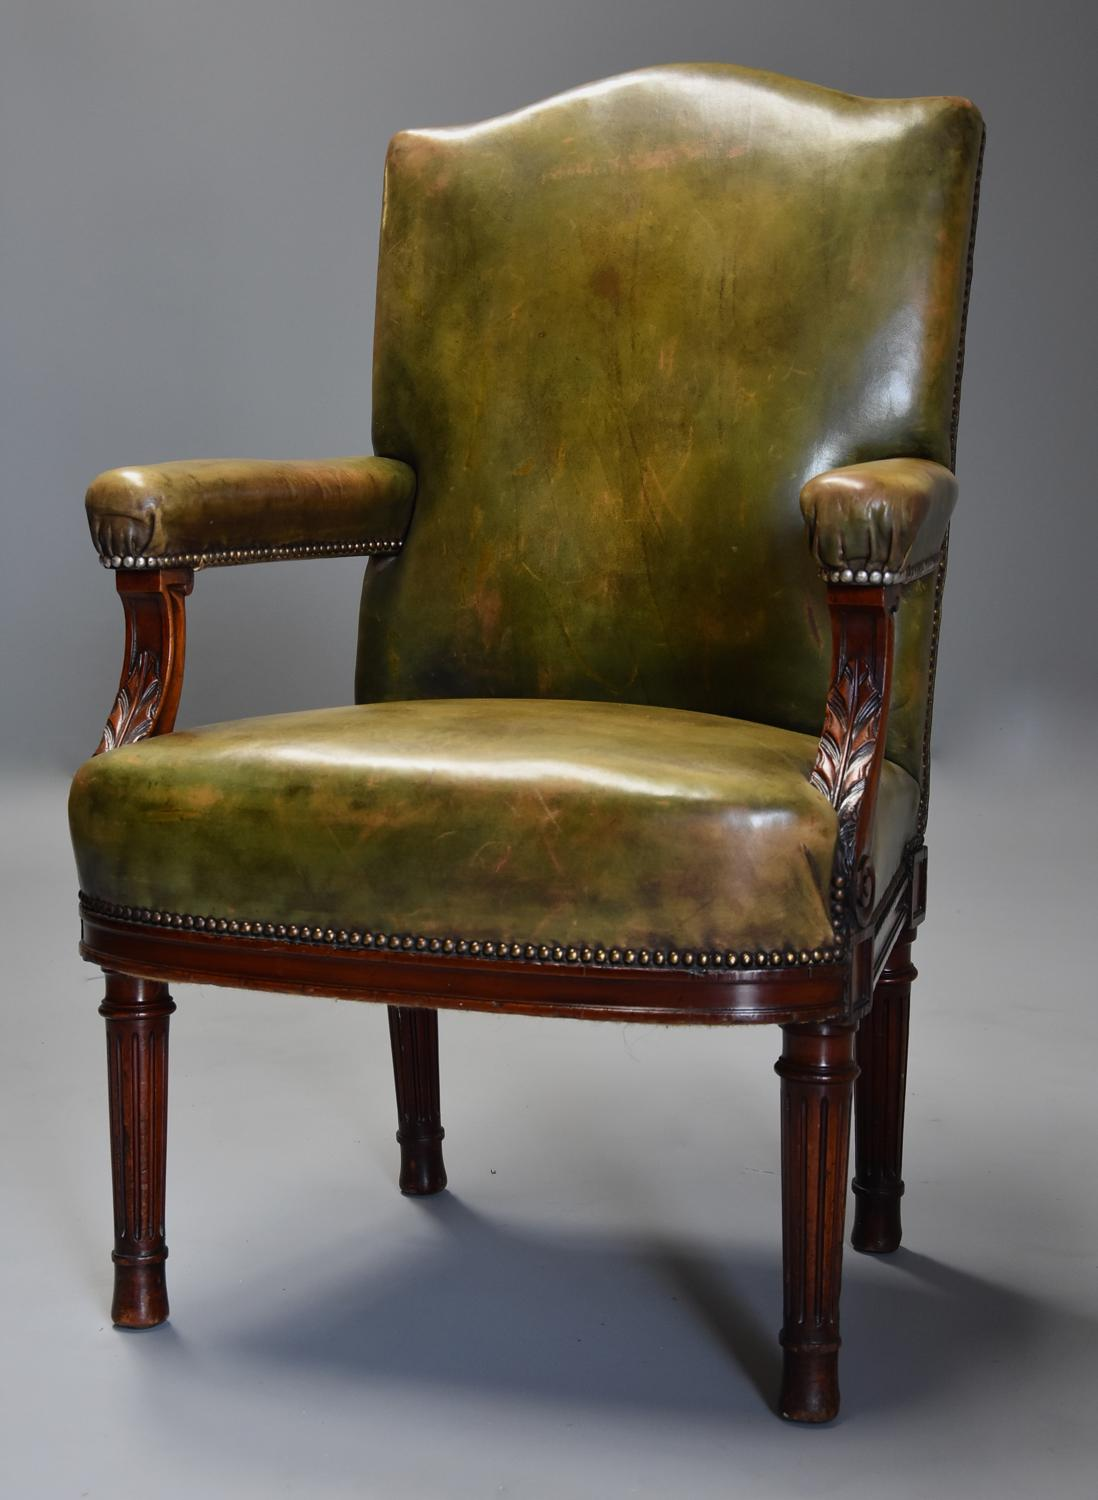 Late 19th century mahogany green leather open armchair